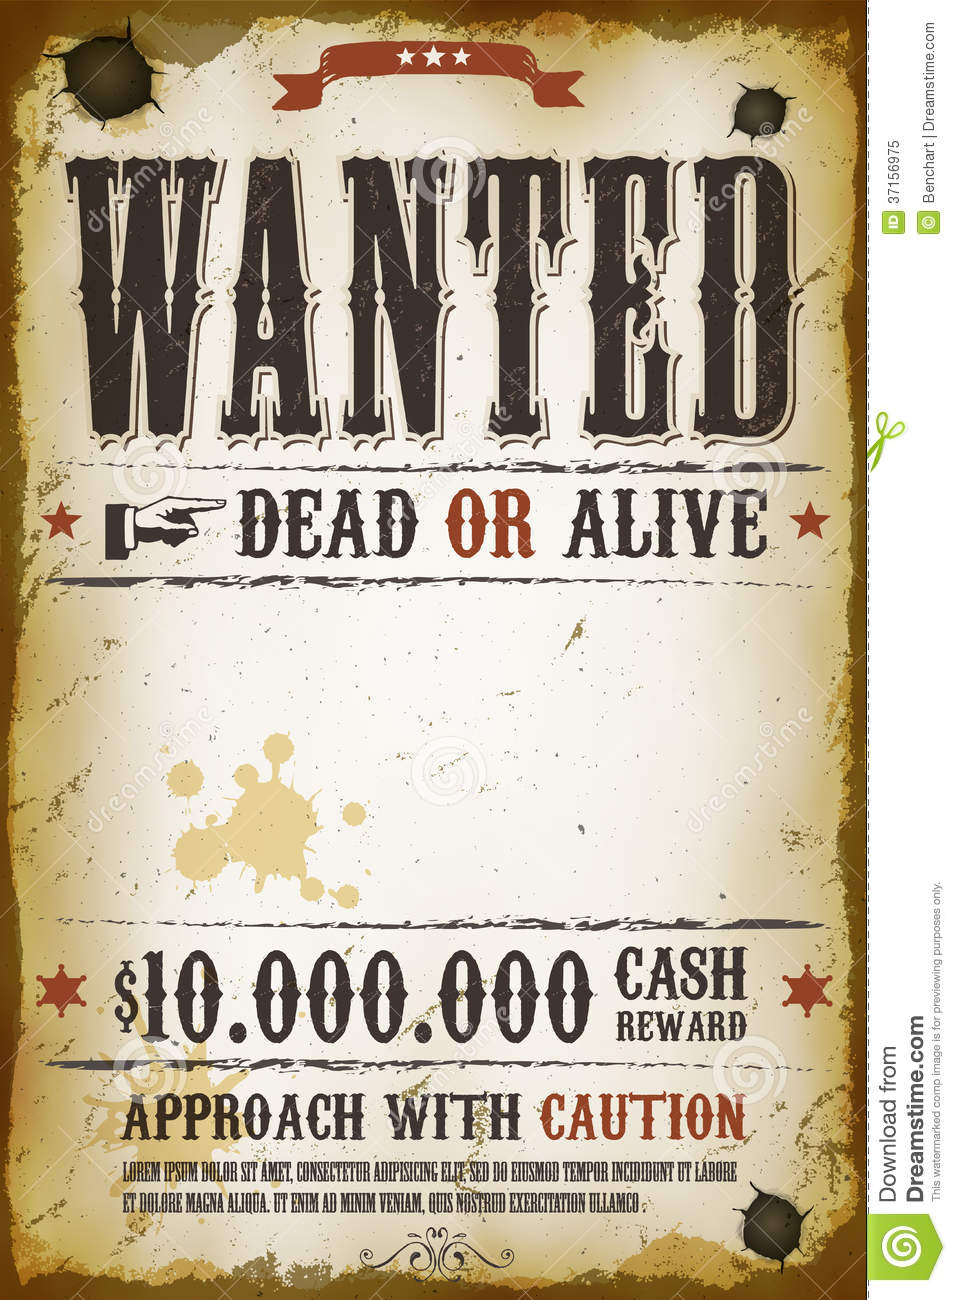 Wanted vintage western poster stock vector illustration for Wanted dead or alive poster template free